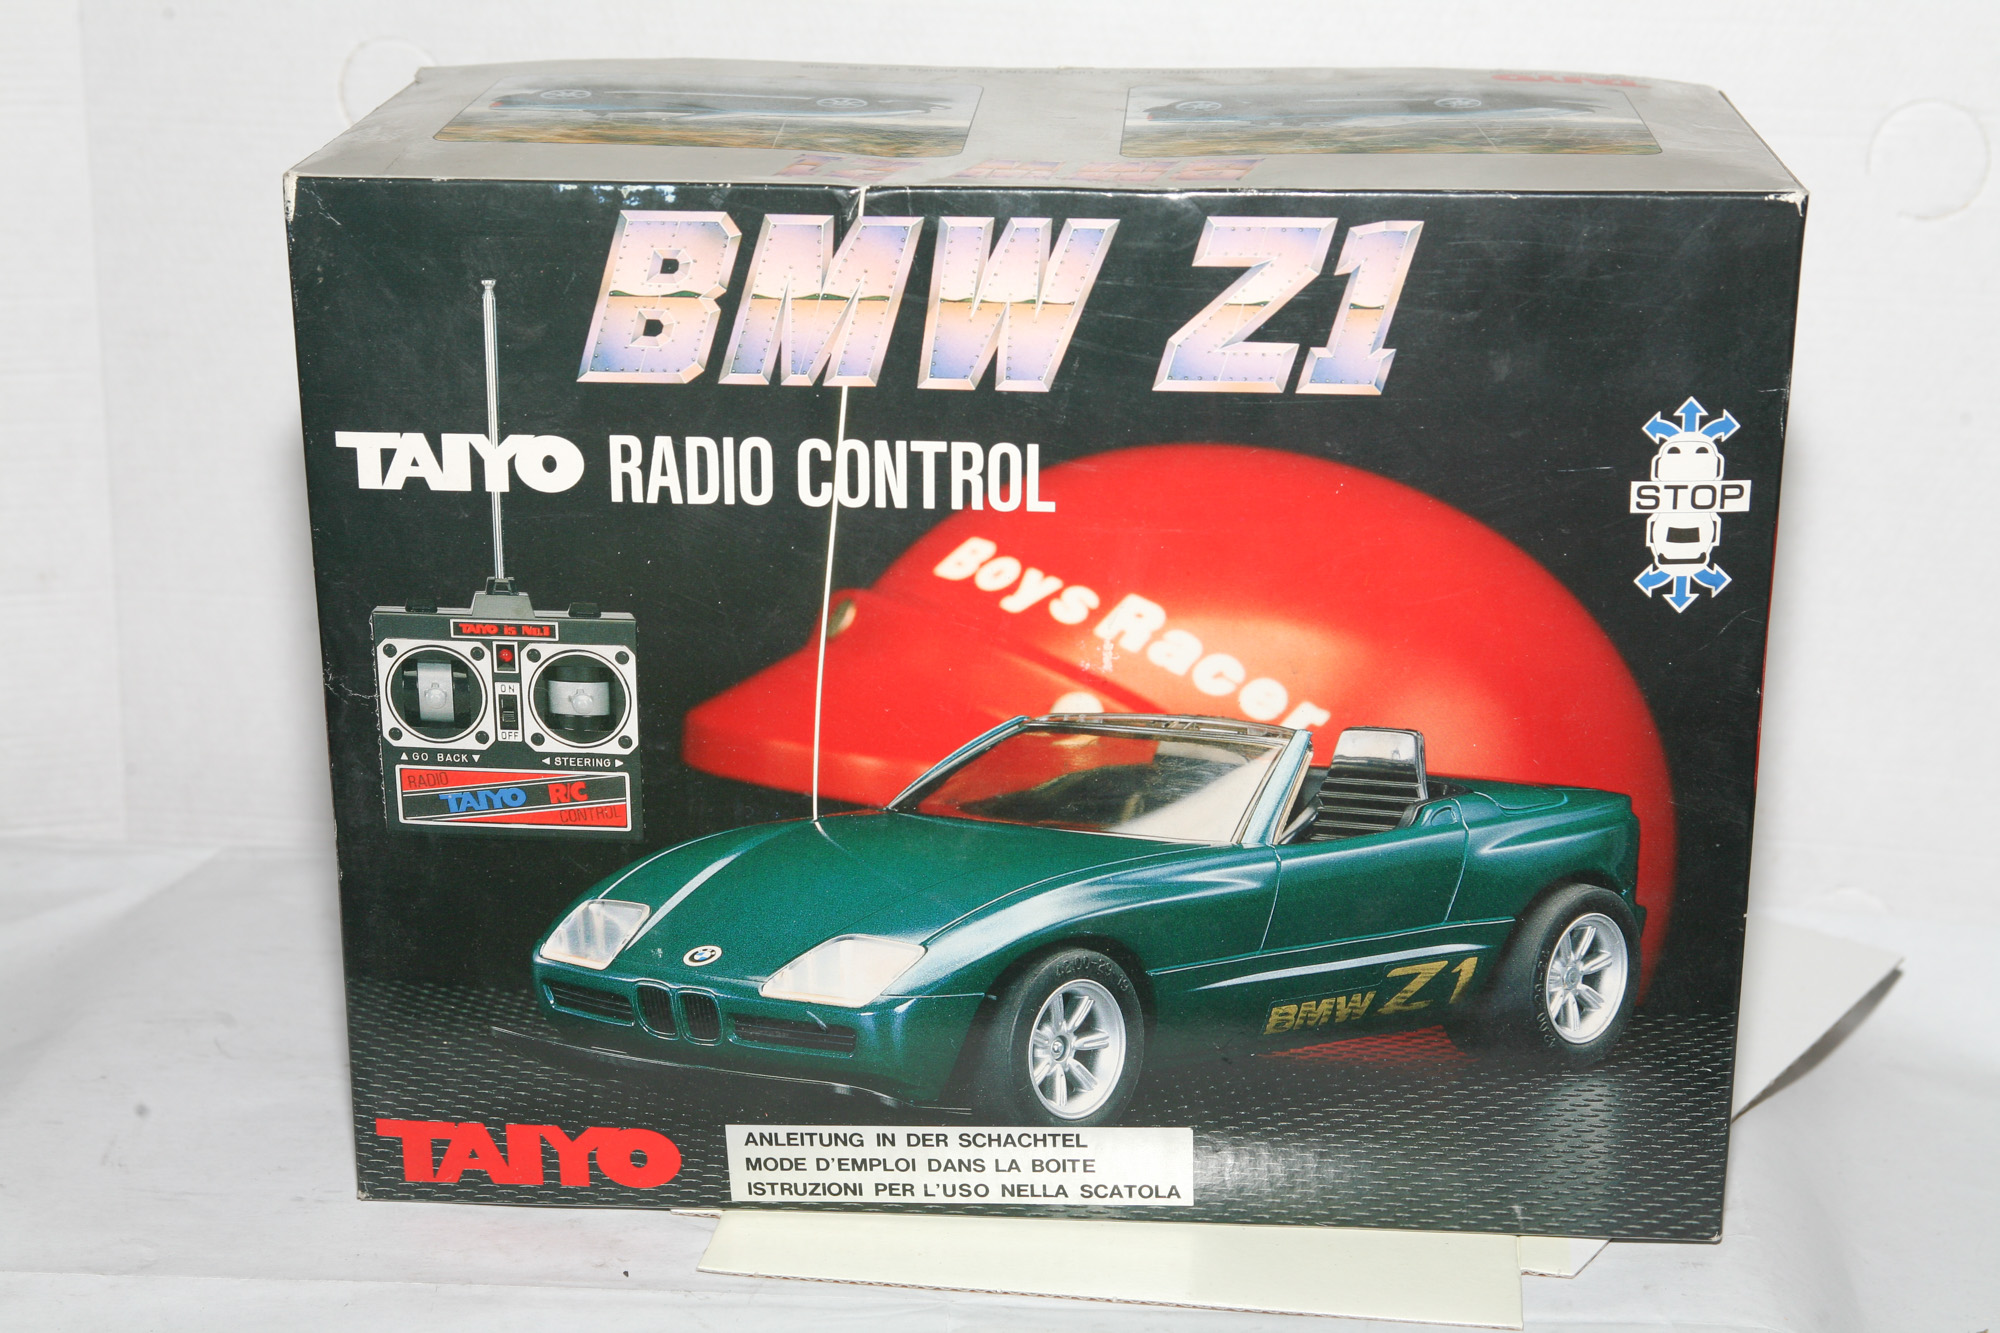 taiyo radio control bmw z1 ebay. Black Bedroom Furniture Sets. Home Design Ideas